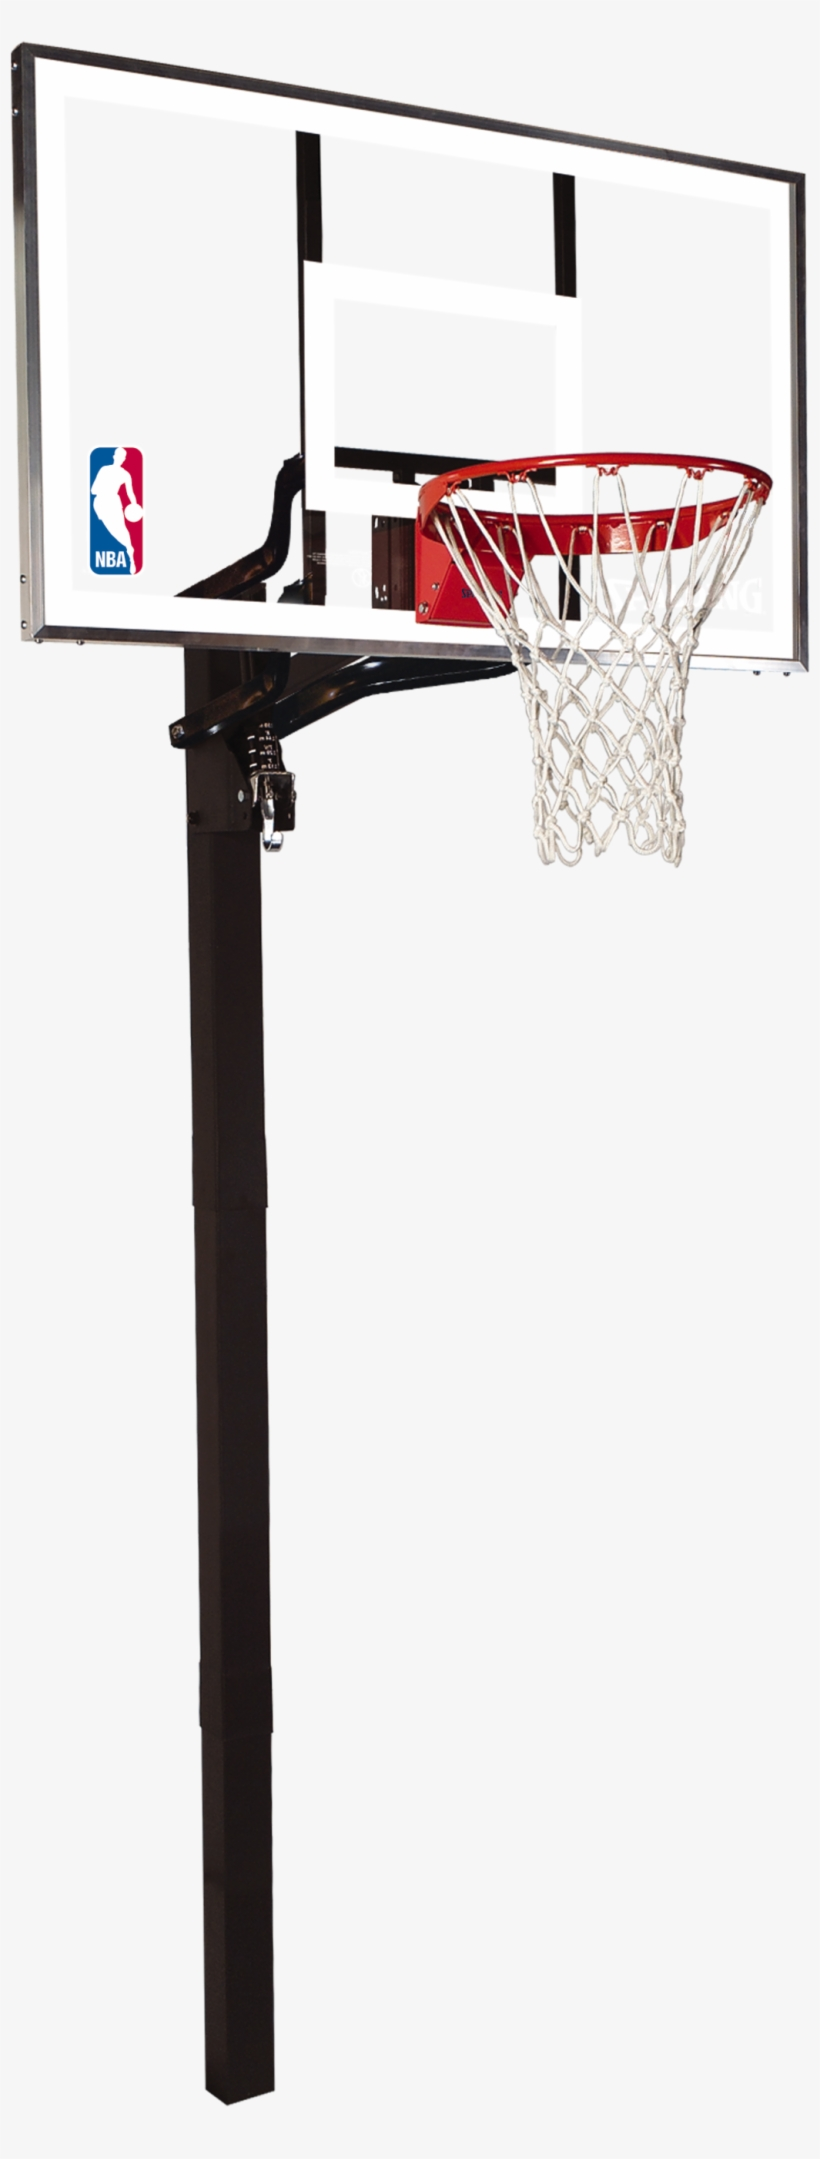 "Spalding 54"" Glass In-ground Basketball Hoop - 60 Inch Spalding Basketball Hoop, transparent png #54659"